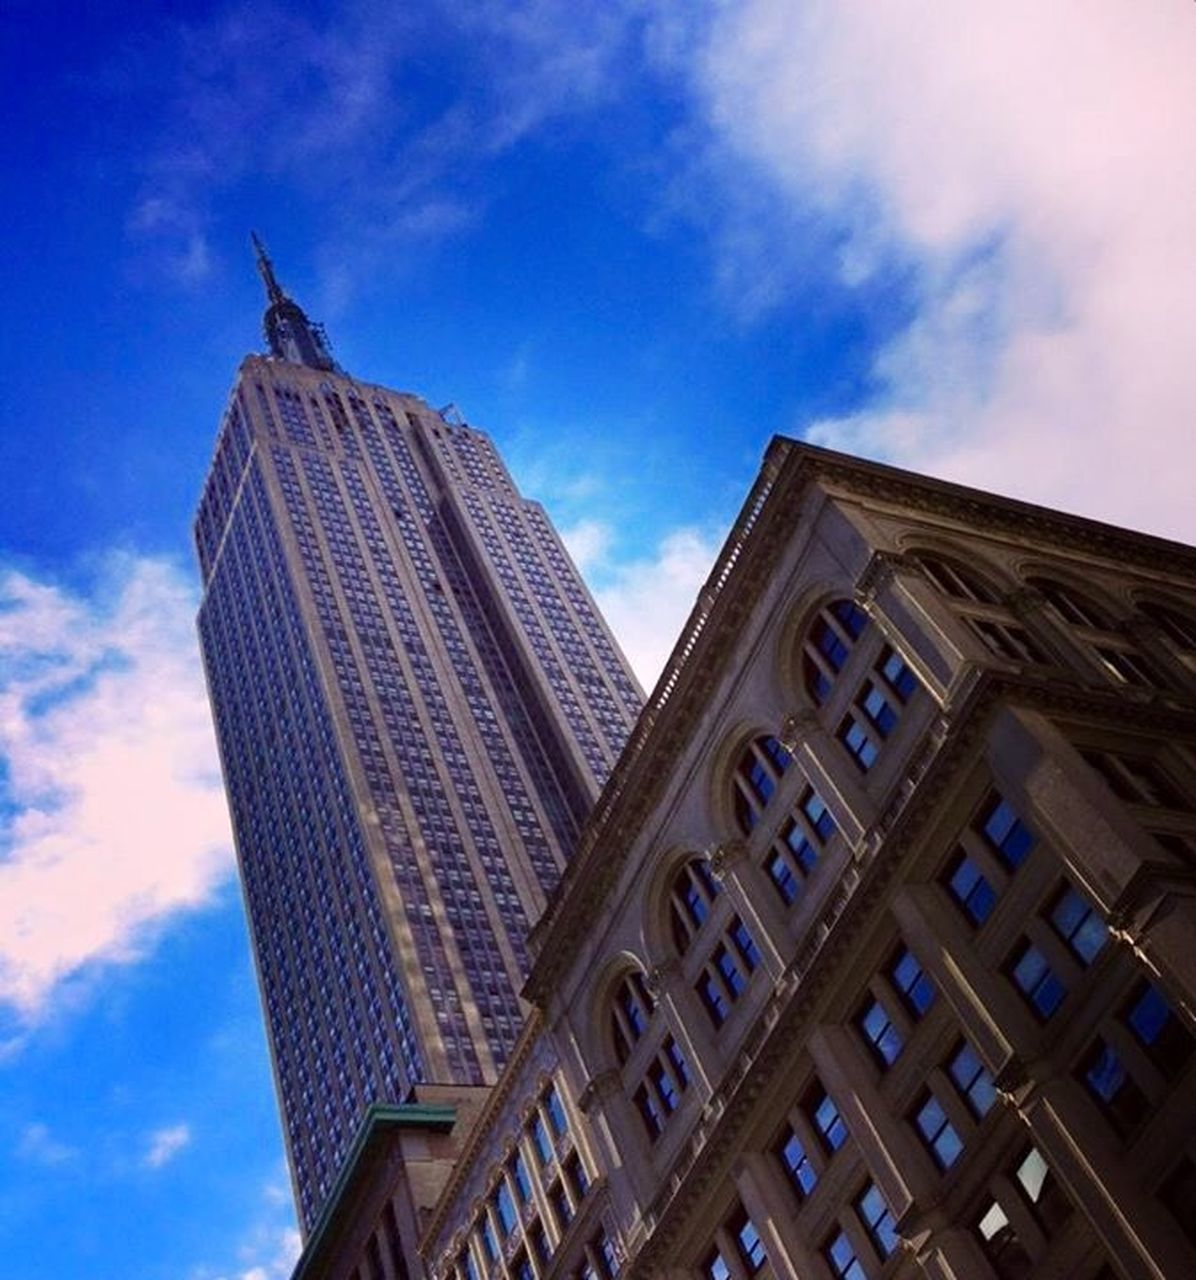 architecture, low angle view, building exterior, built structure, sky, skyscraper, day, outdoors, city, cloud - sky, no people, travel destinations, blue, modern